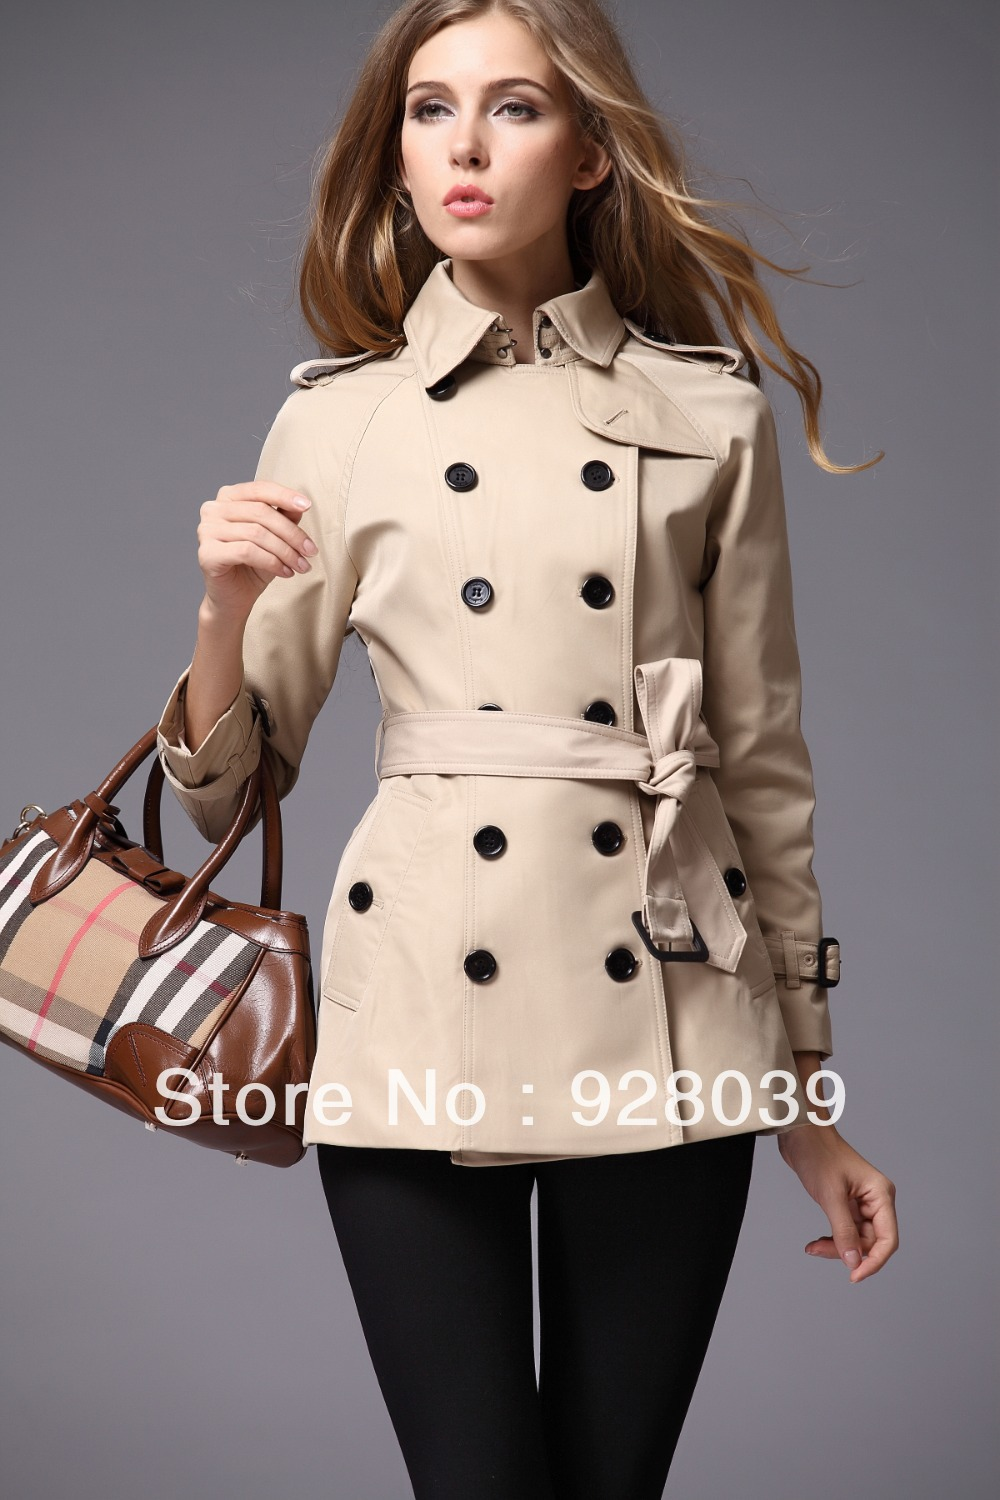 Womens trench coat sale